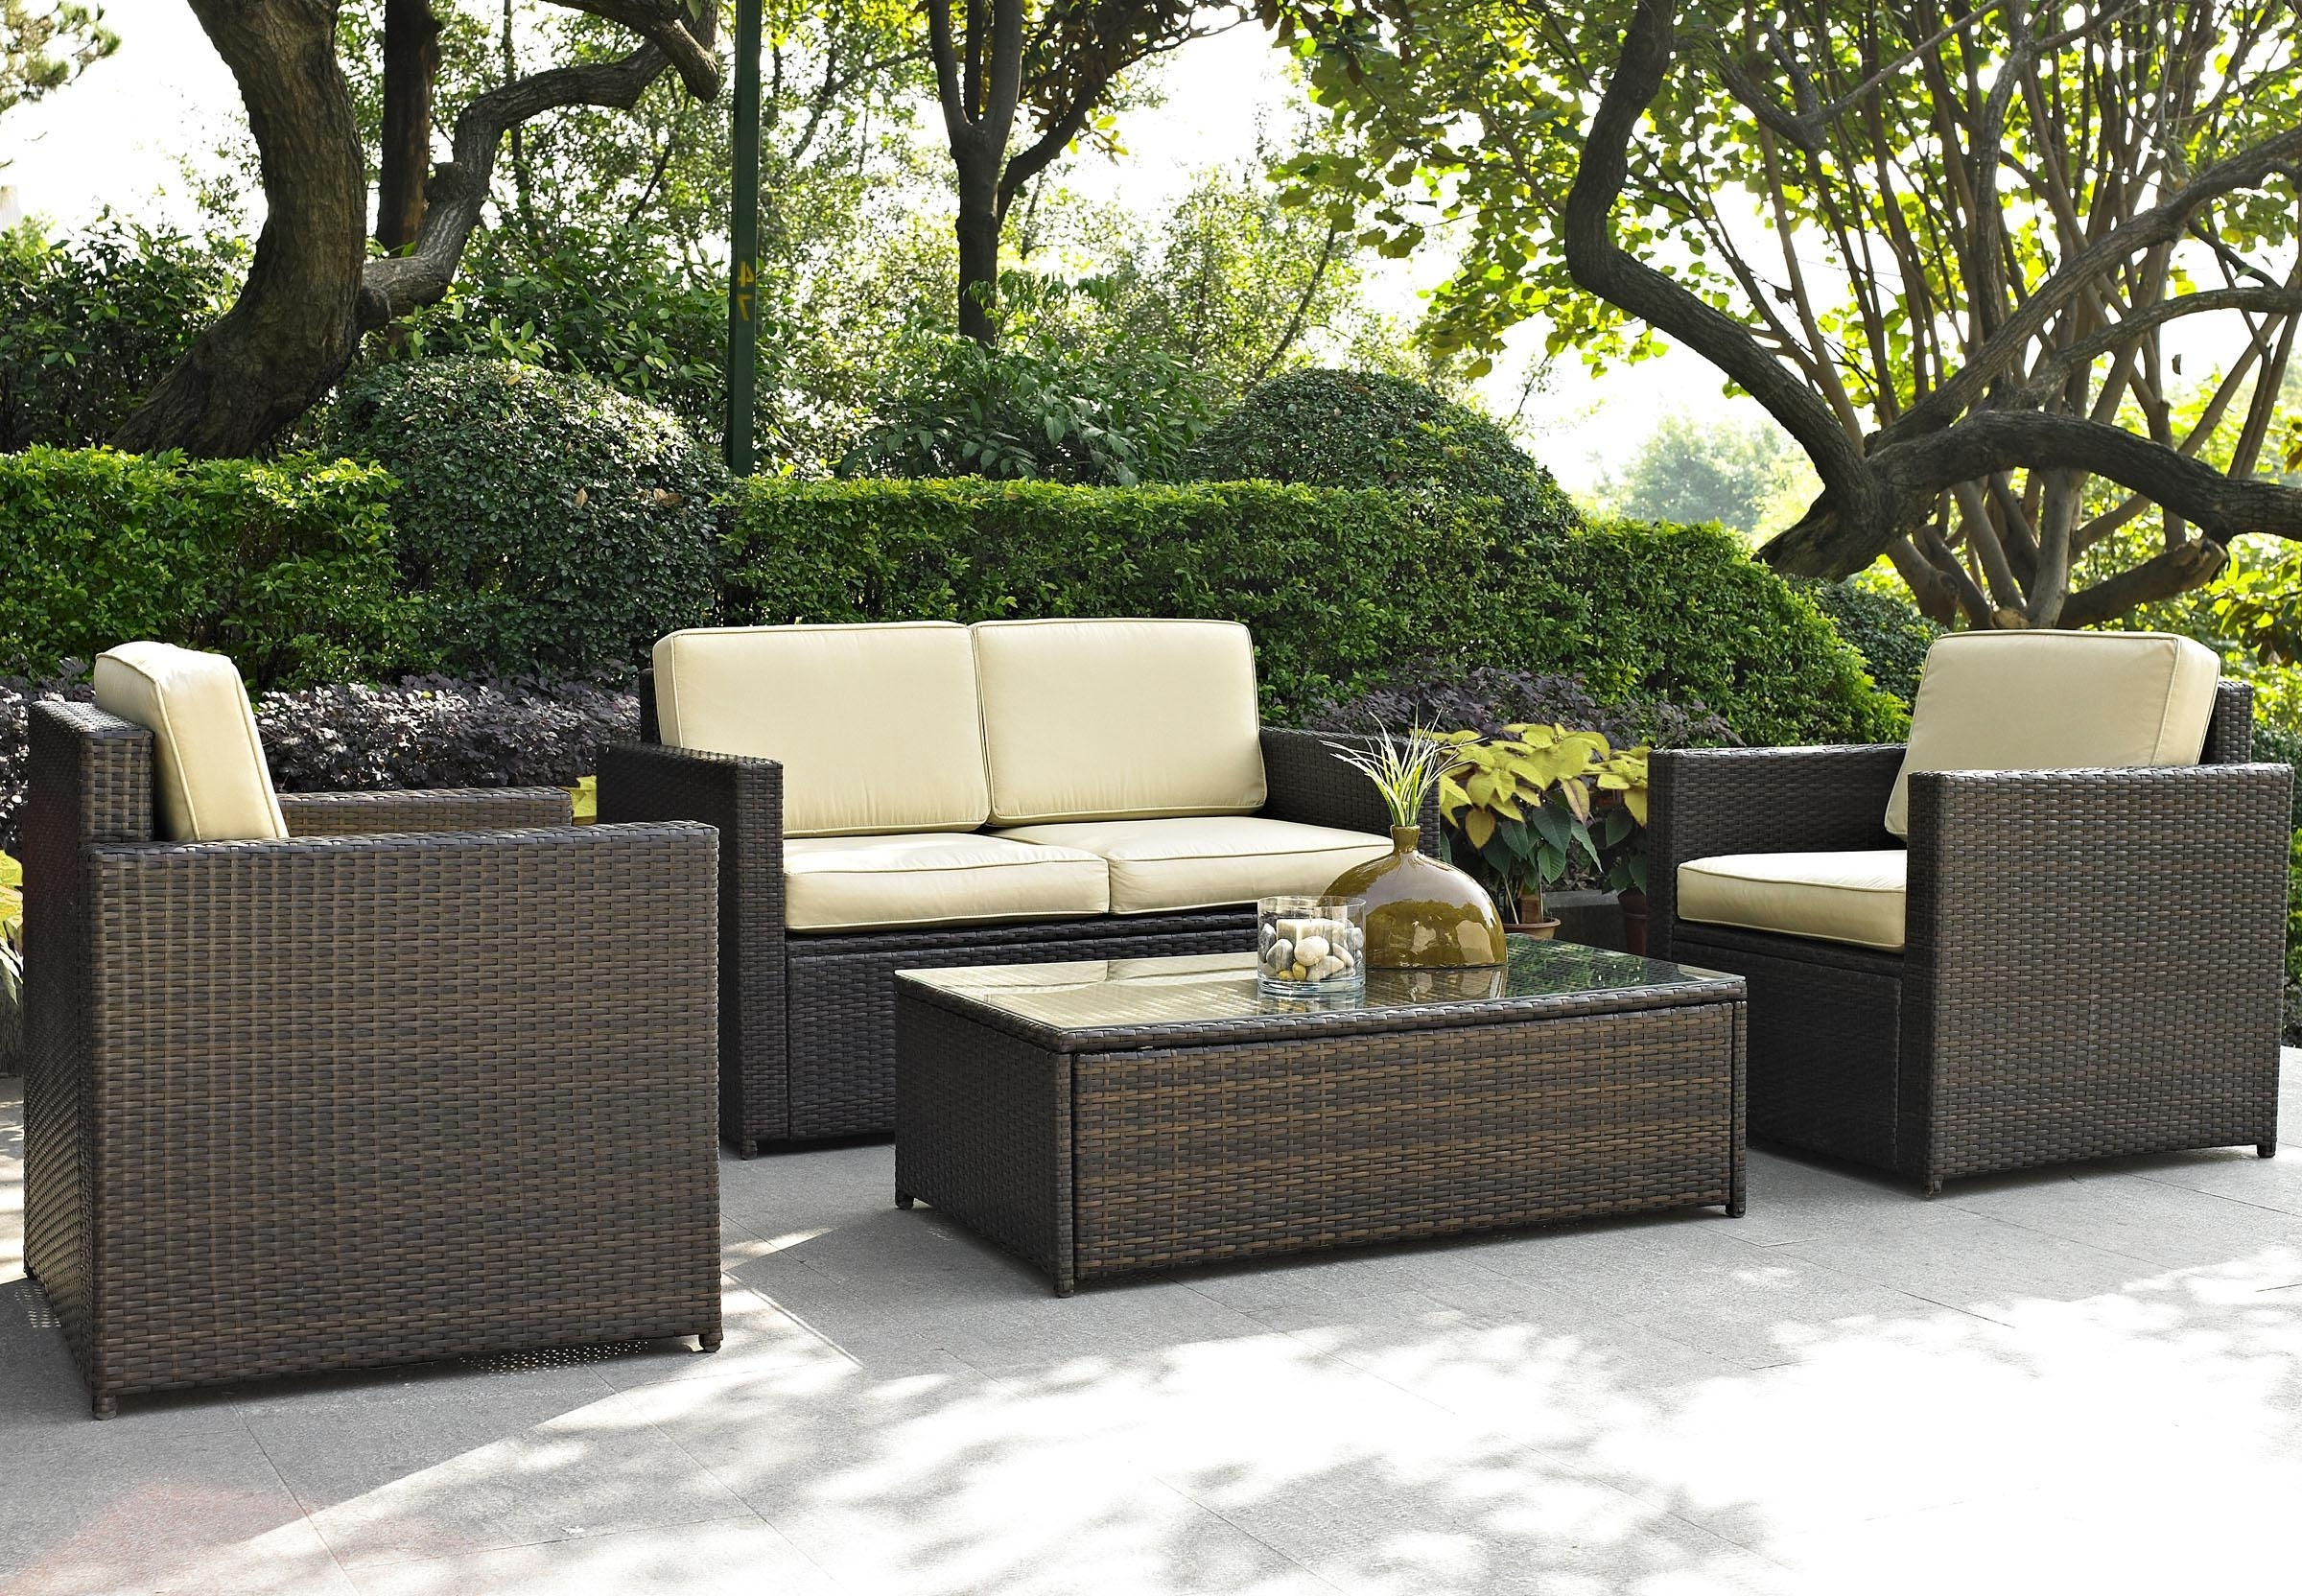 Patio Conversation Sets At Target Throughout Most Recent Furniture: Lovely Brown Wicker Chair Outdoor Furniture Design (View 14 of 20)